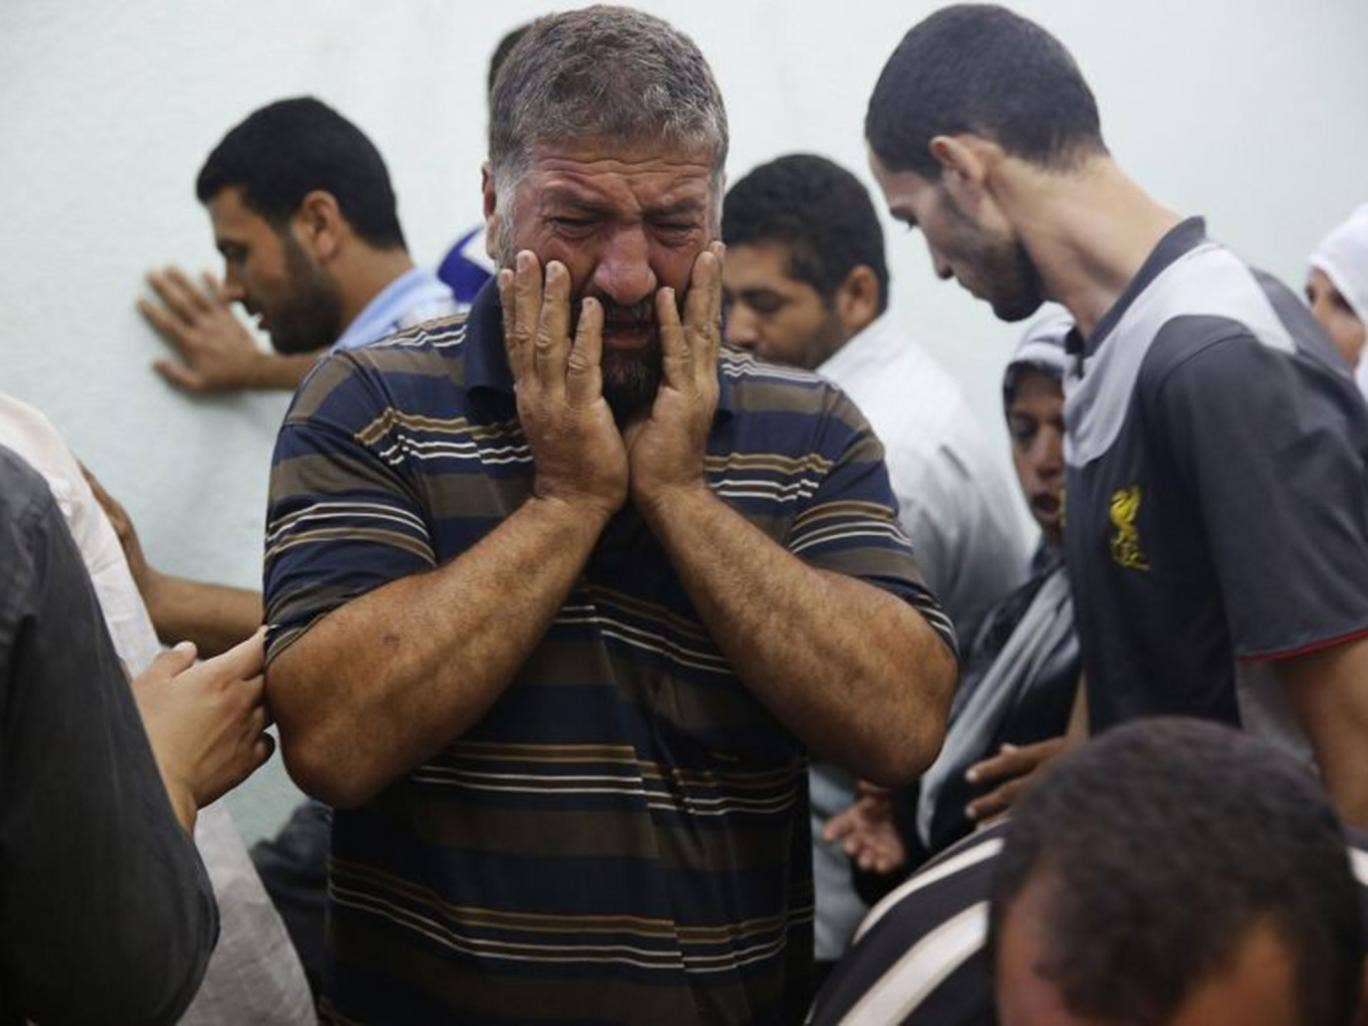 A Palestinian man mourns a relative who medics said died in Israeli shelling during the Israeli ground offensive